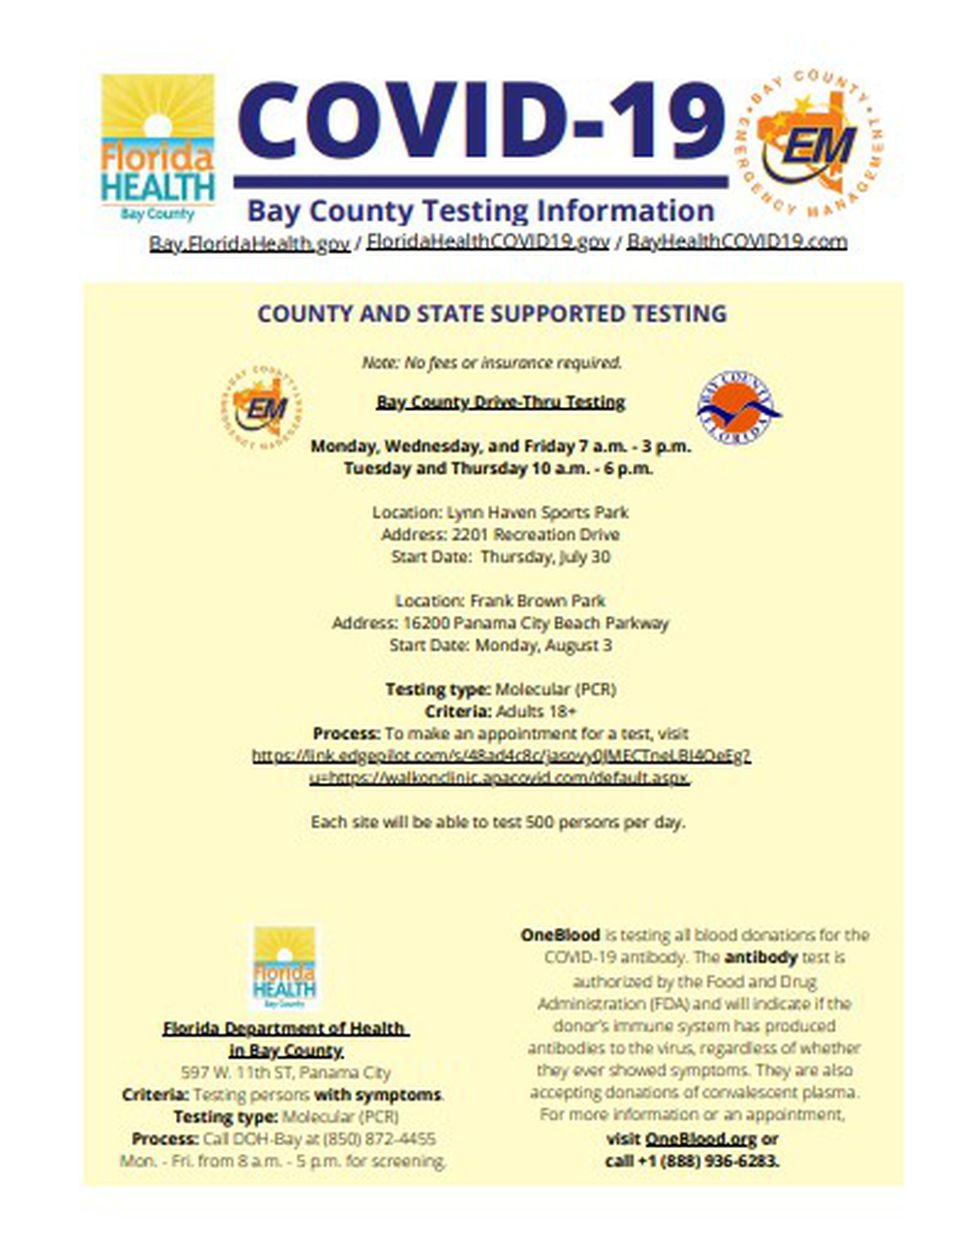 Three new COVID-19 testing sites are opening in Bay County.